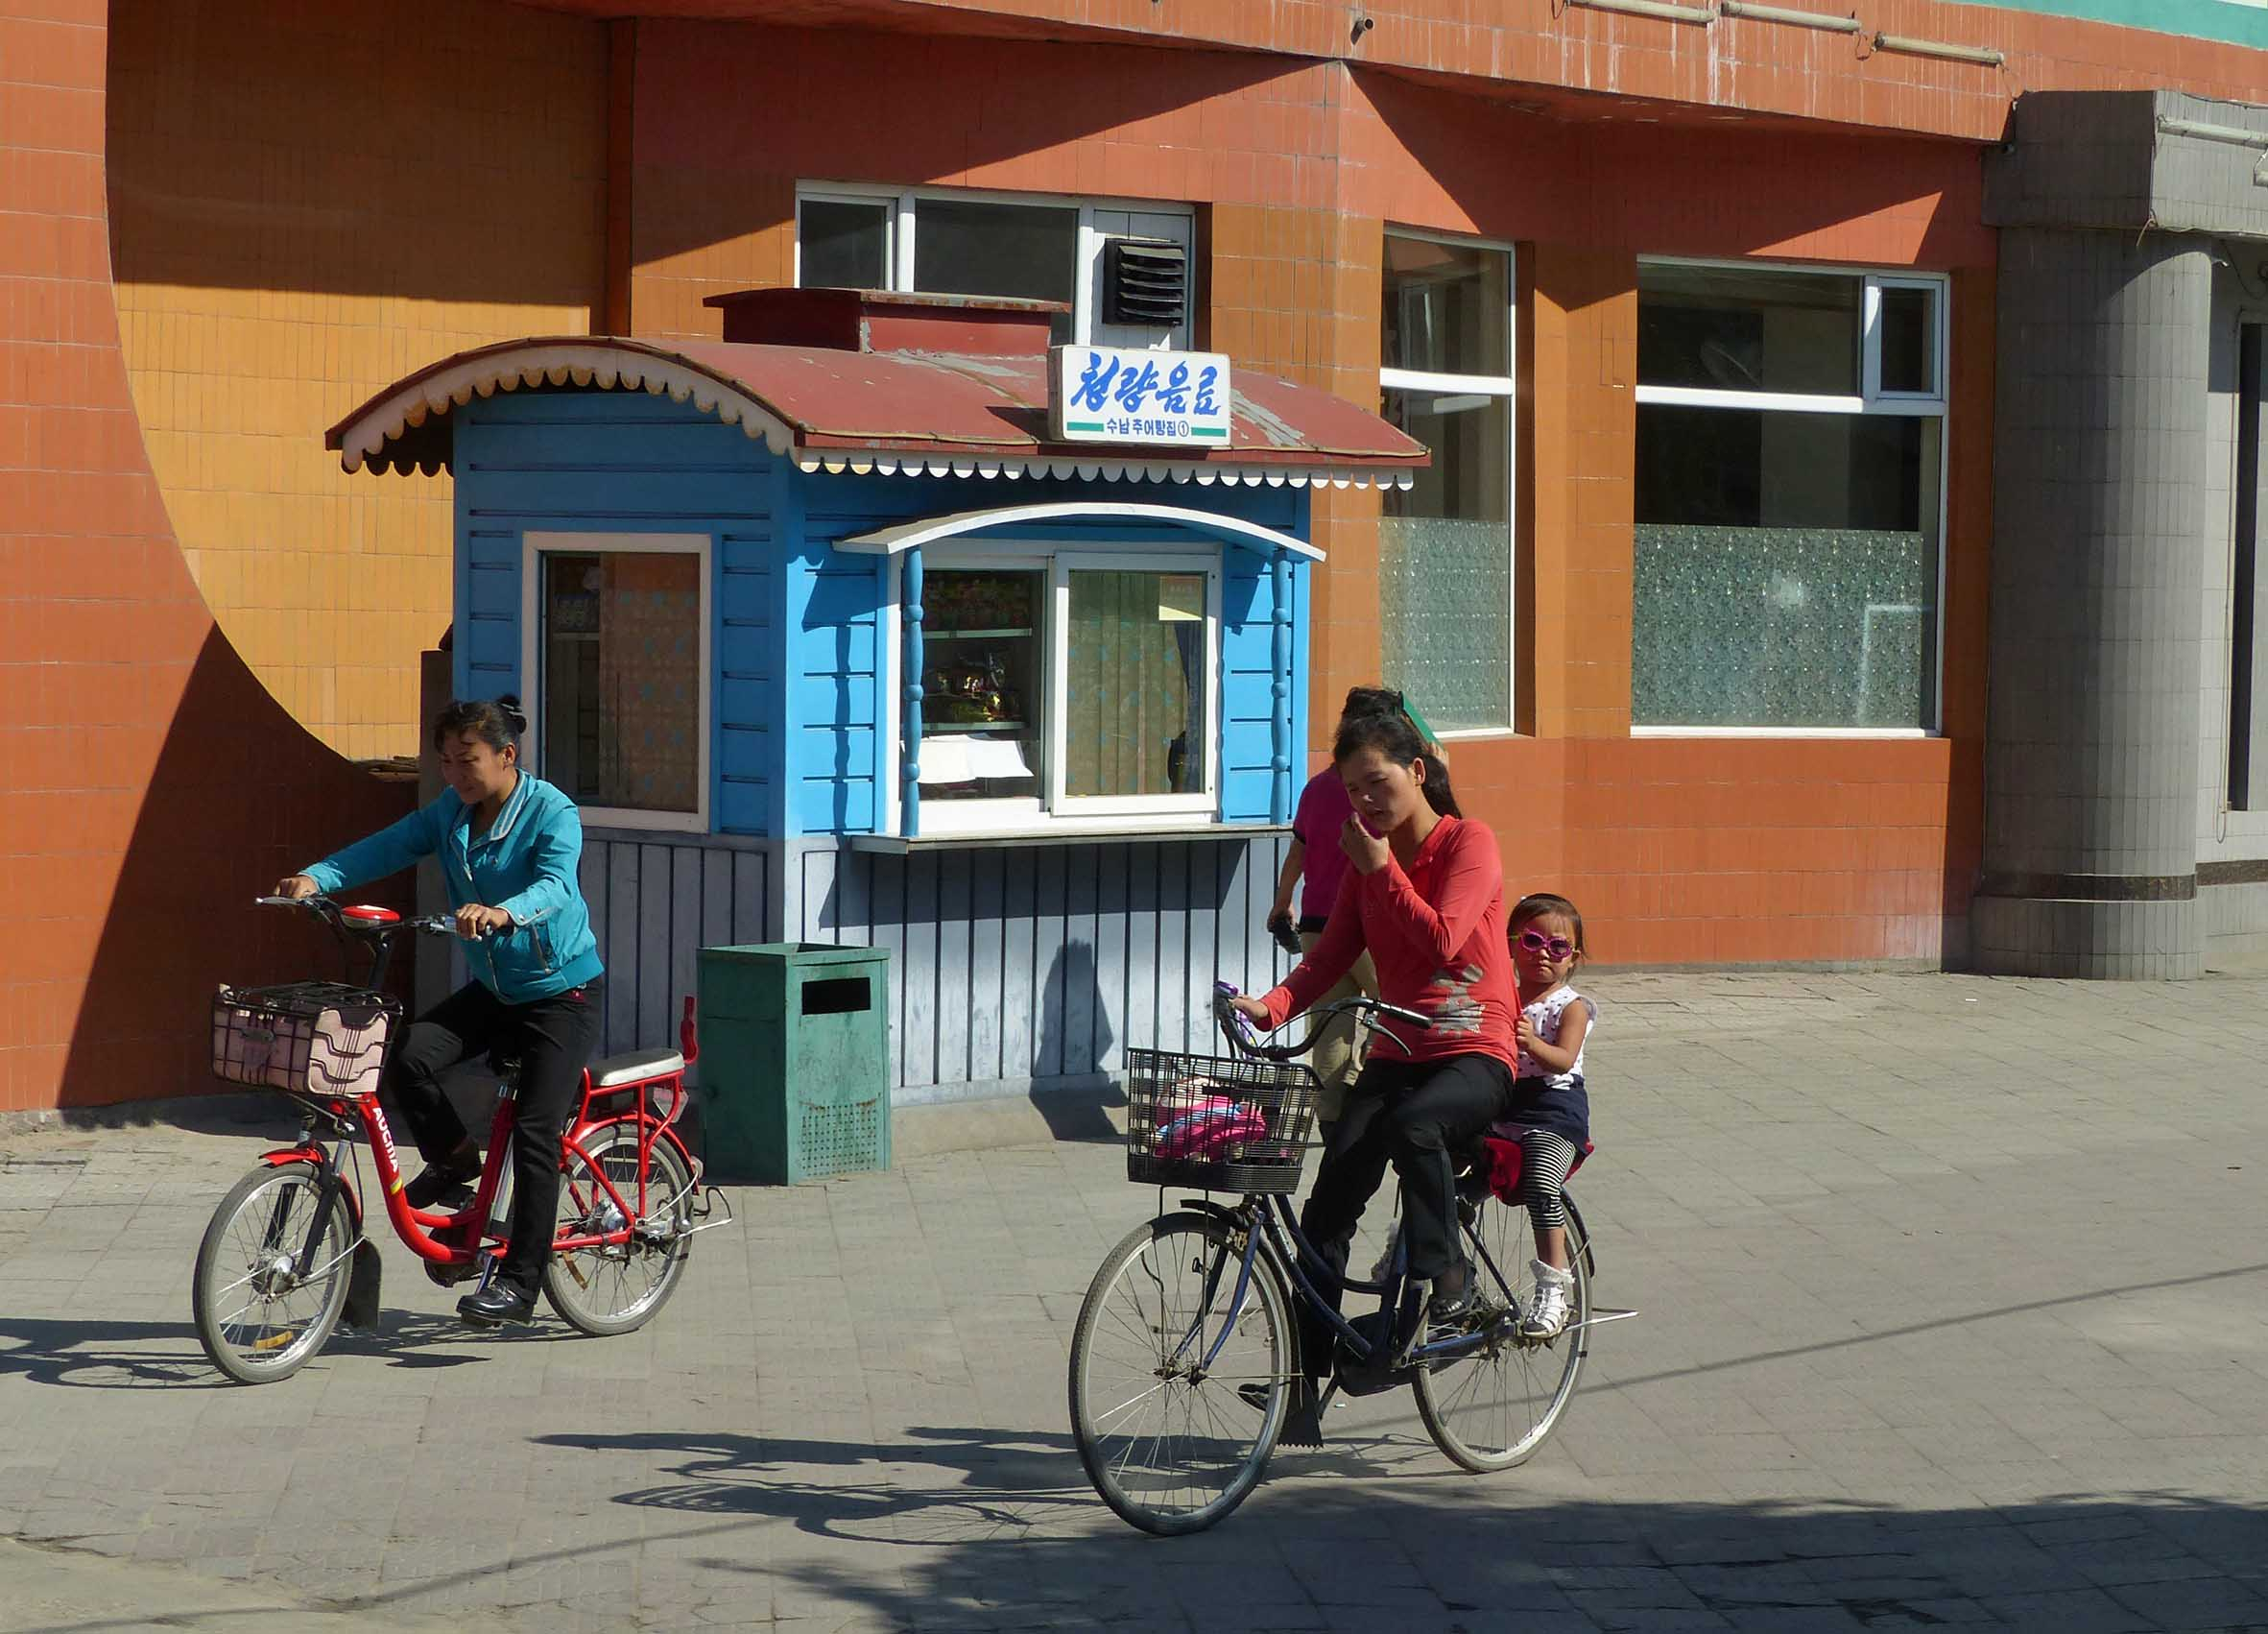 Lady on a bike with small child